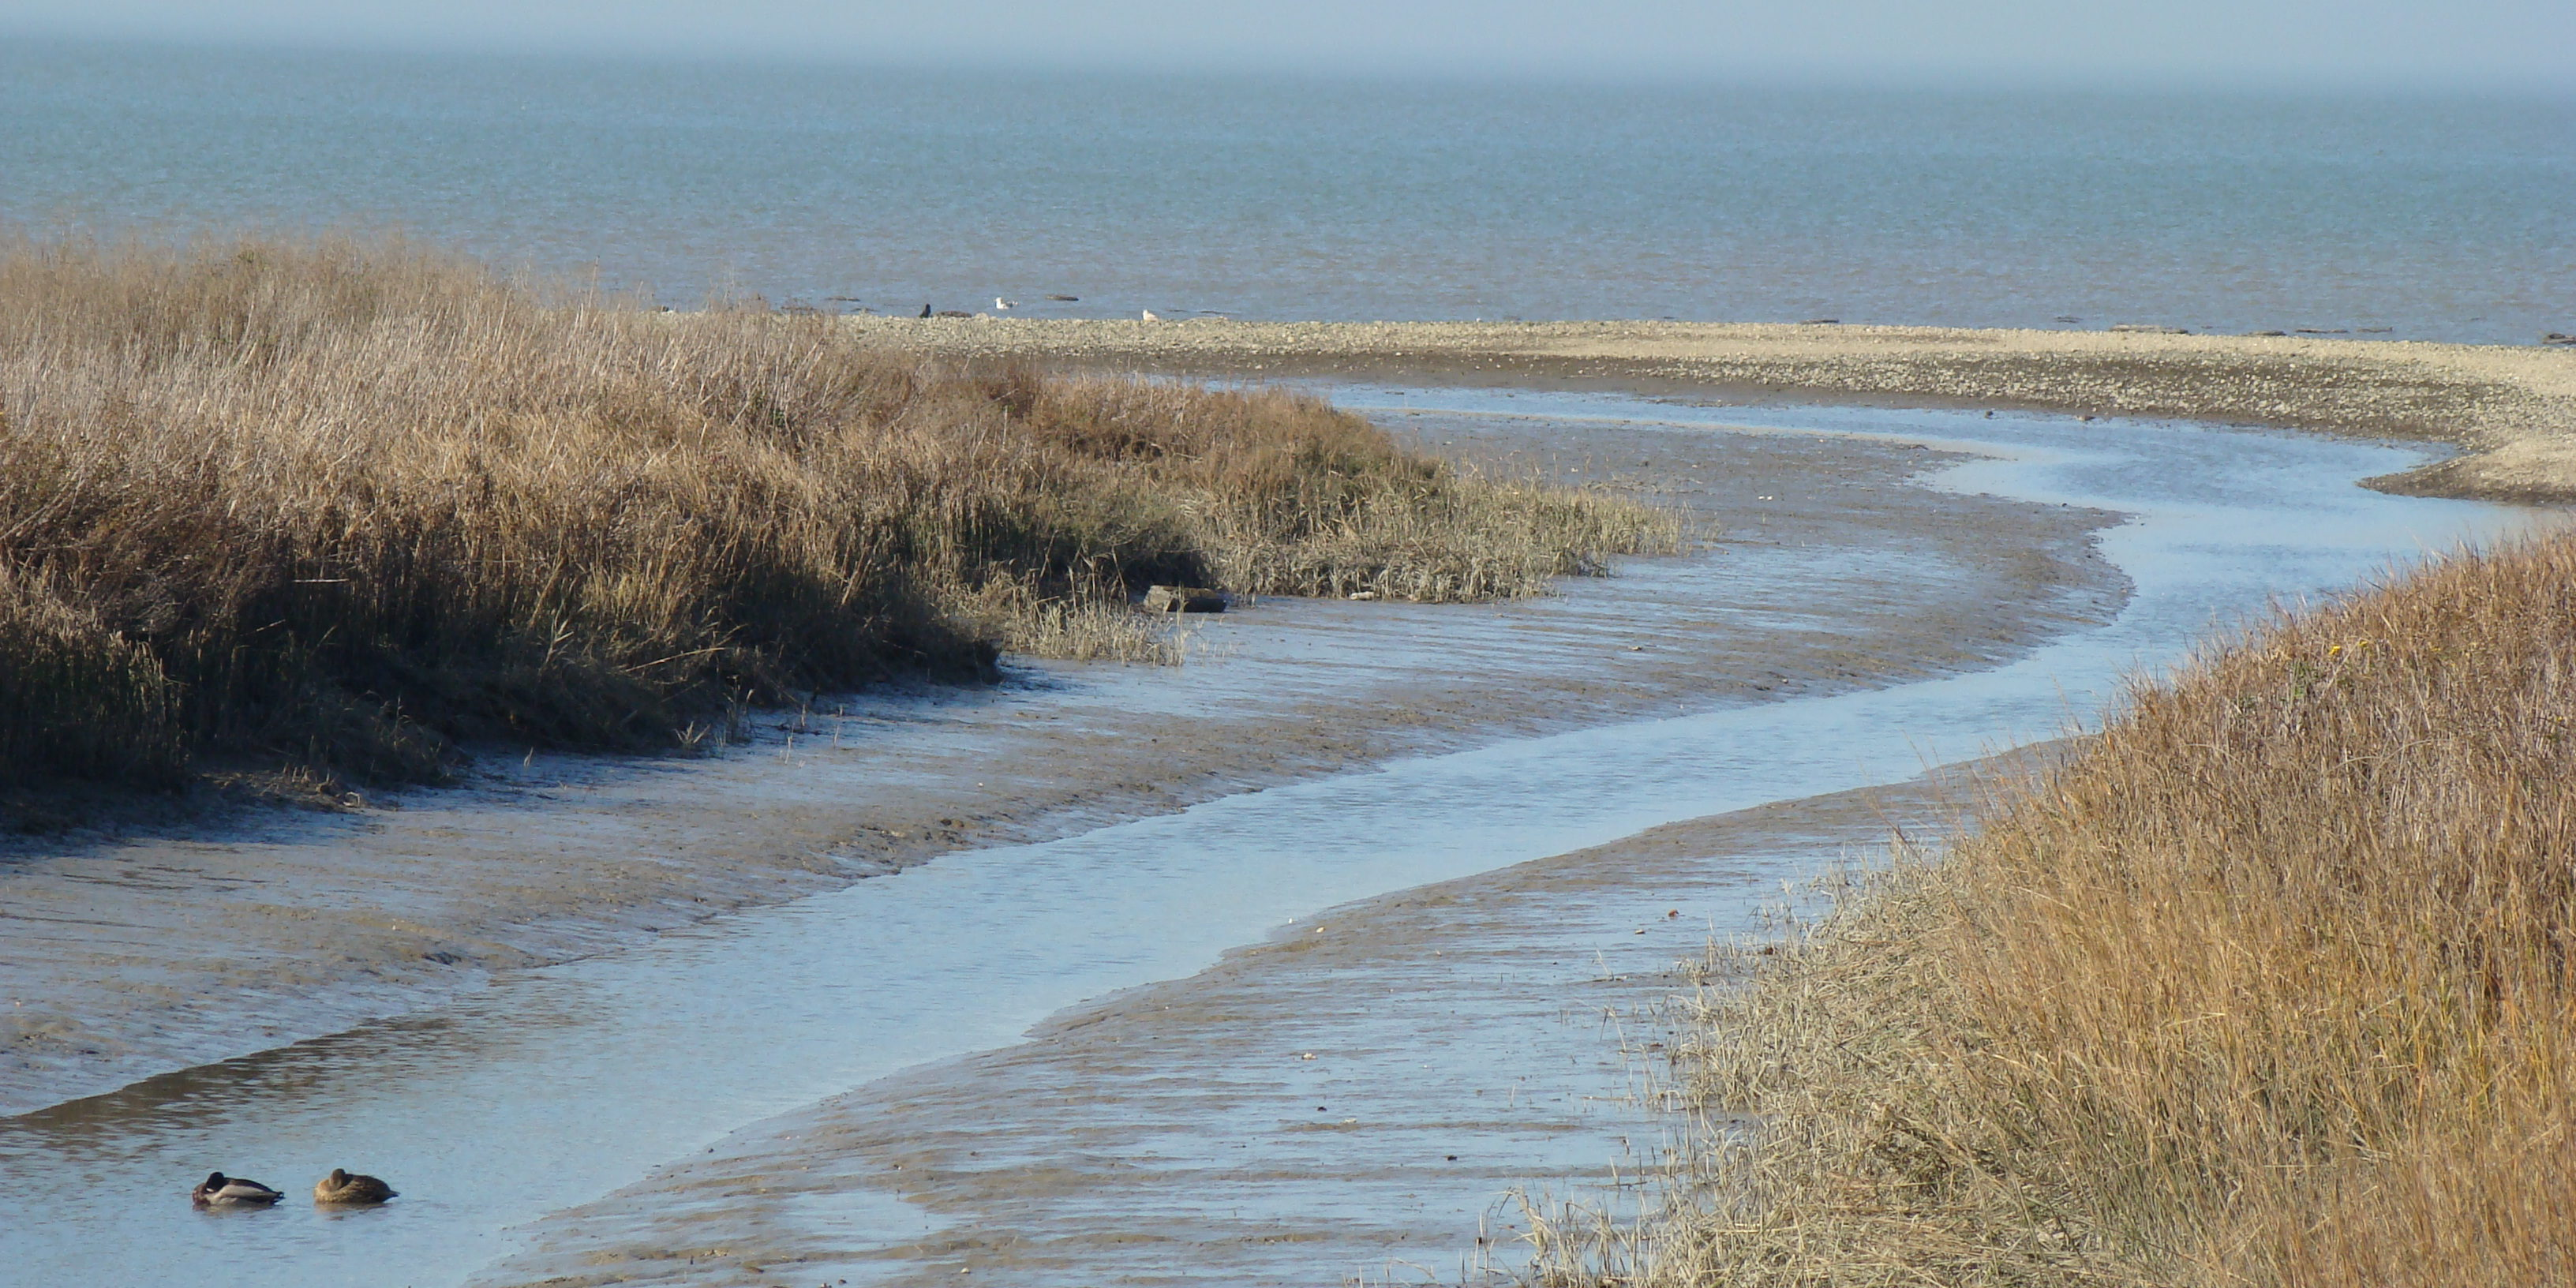 Mouth of Pinole Creek